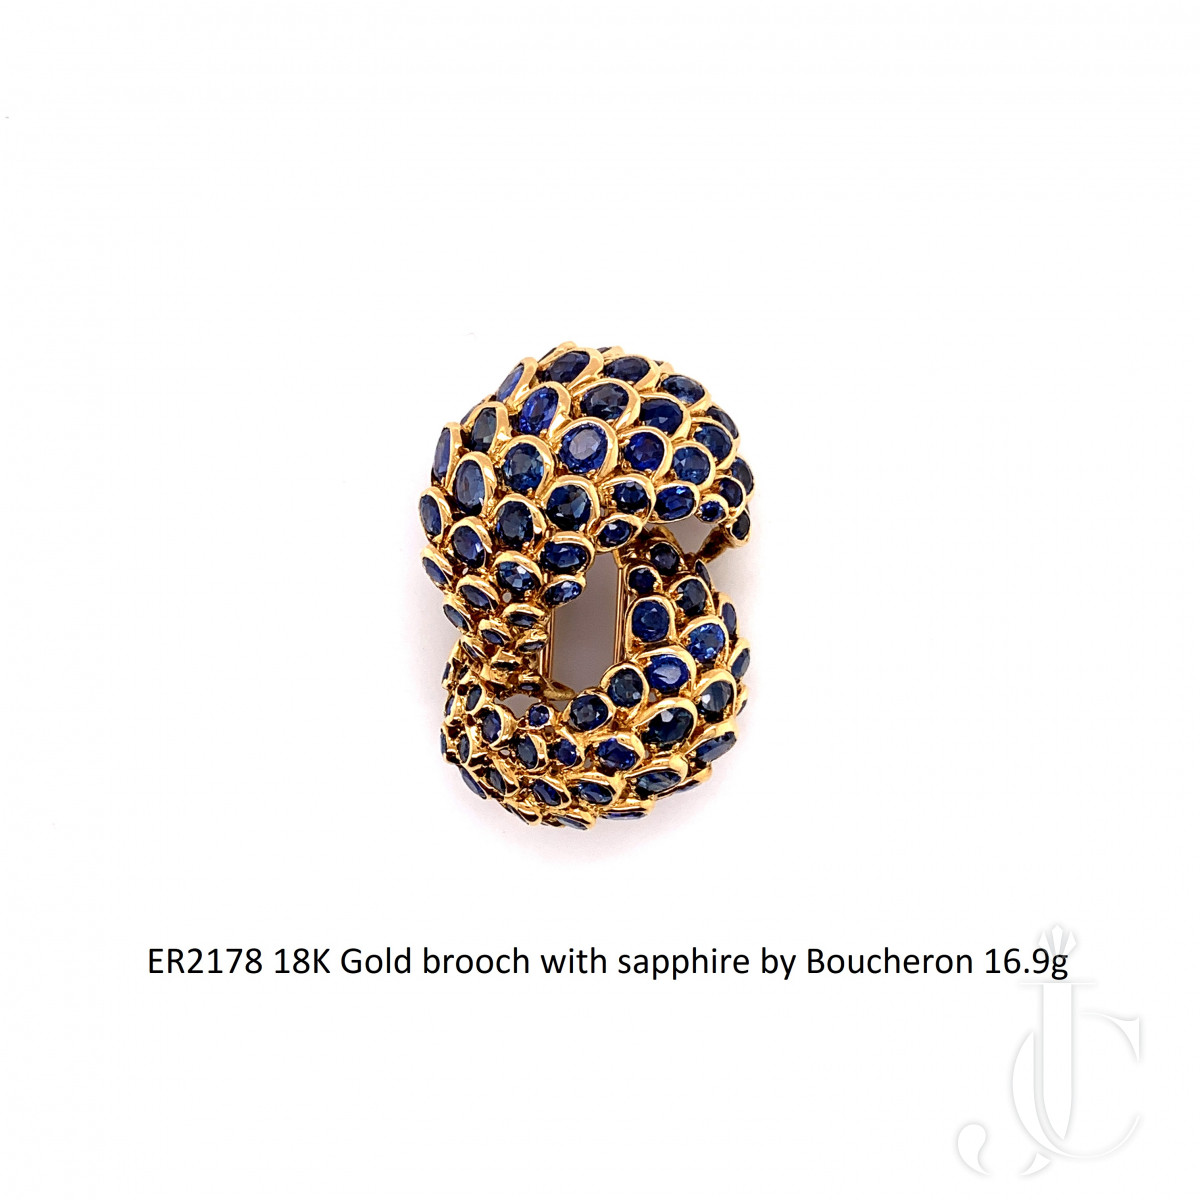 French 18K Gold brooch with sapphire by Boucheron